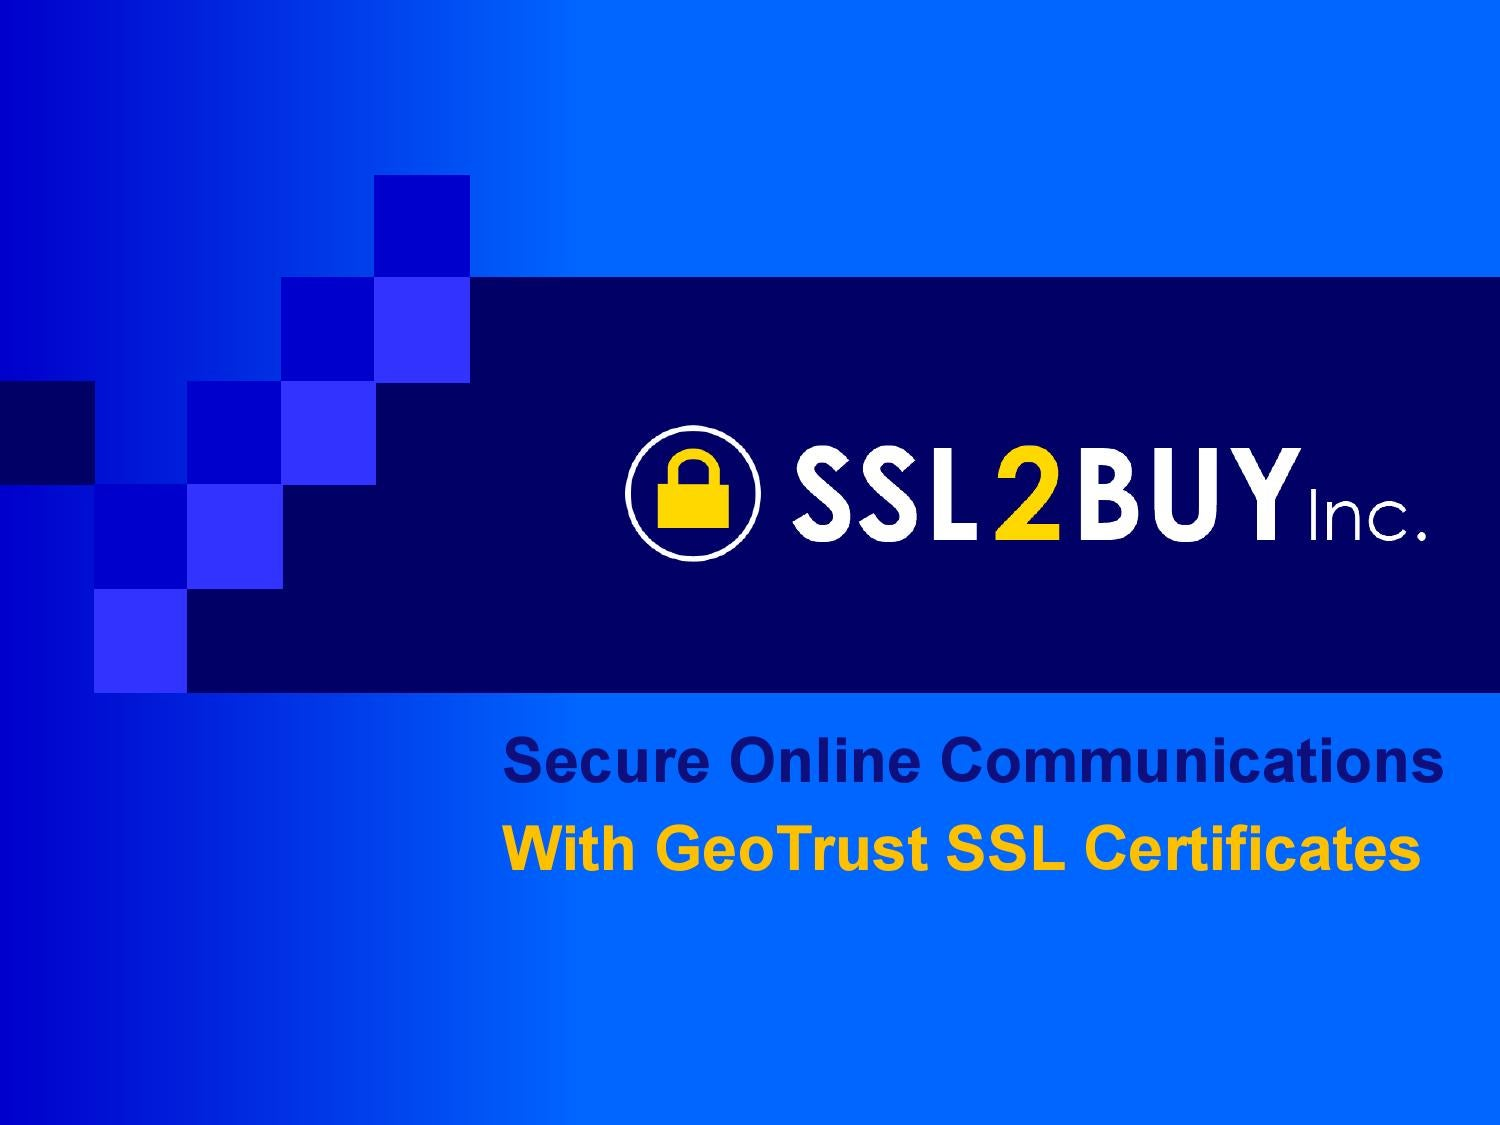 Secure Online Communications With Geotrust Ssl Certificates By